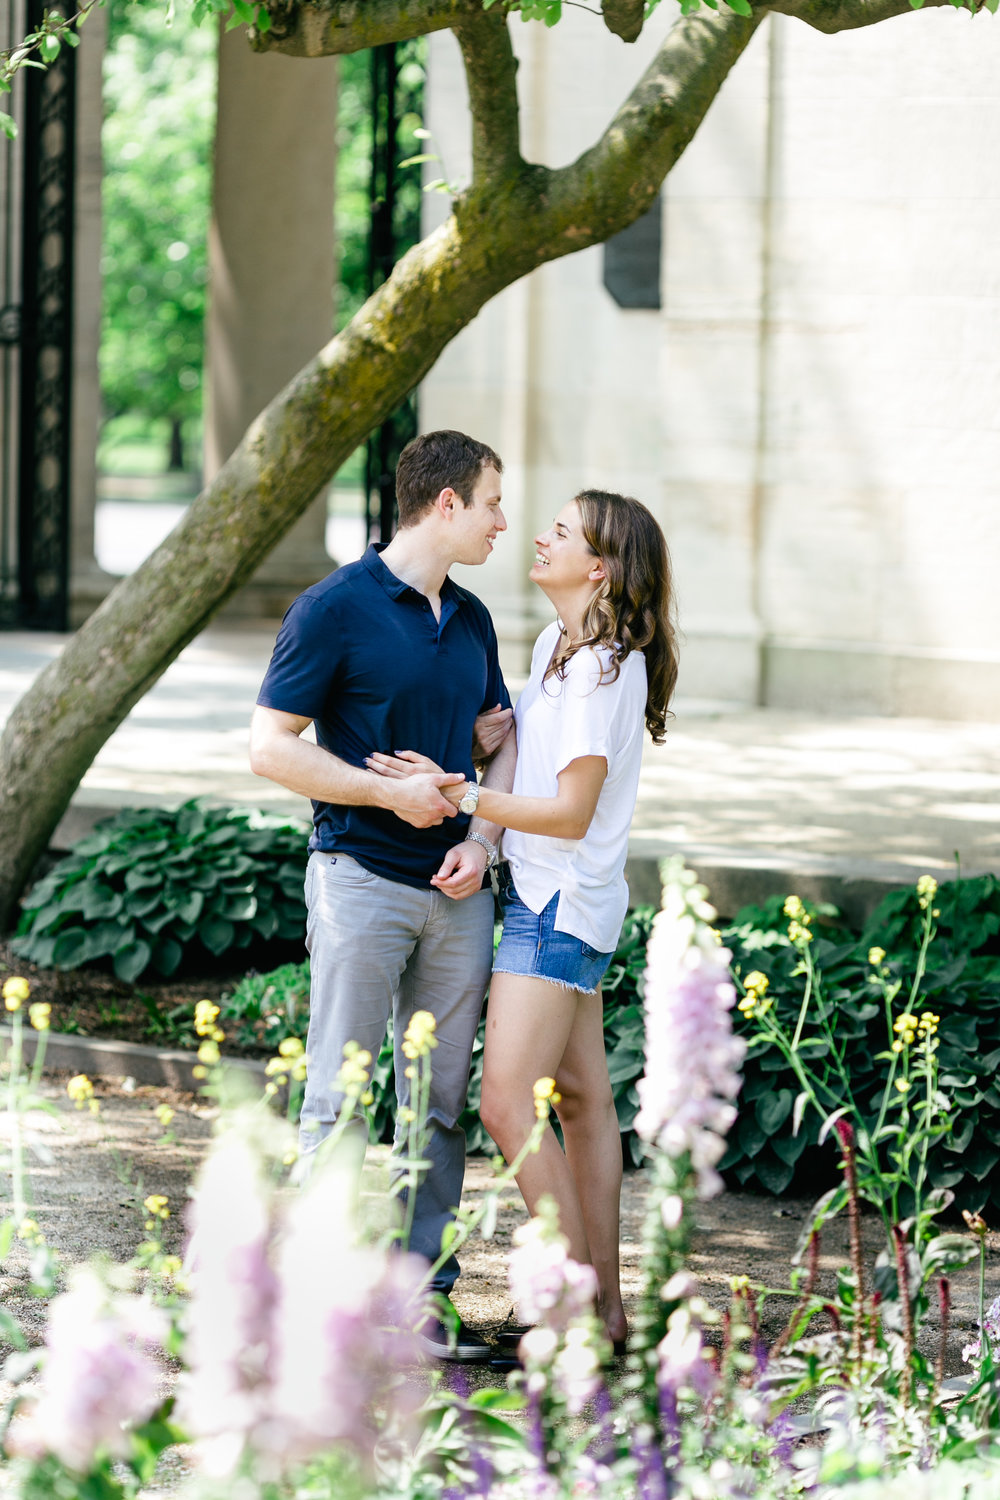 photography-natural-candid-engaged-proposal-philadelphia-wedding-rodin museum-barnes foundation-parkway-modern-lifestyle-15.JPG